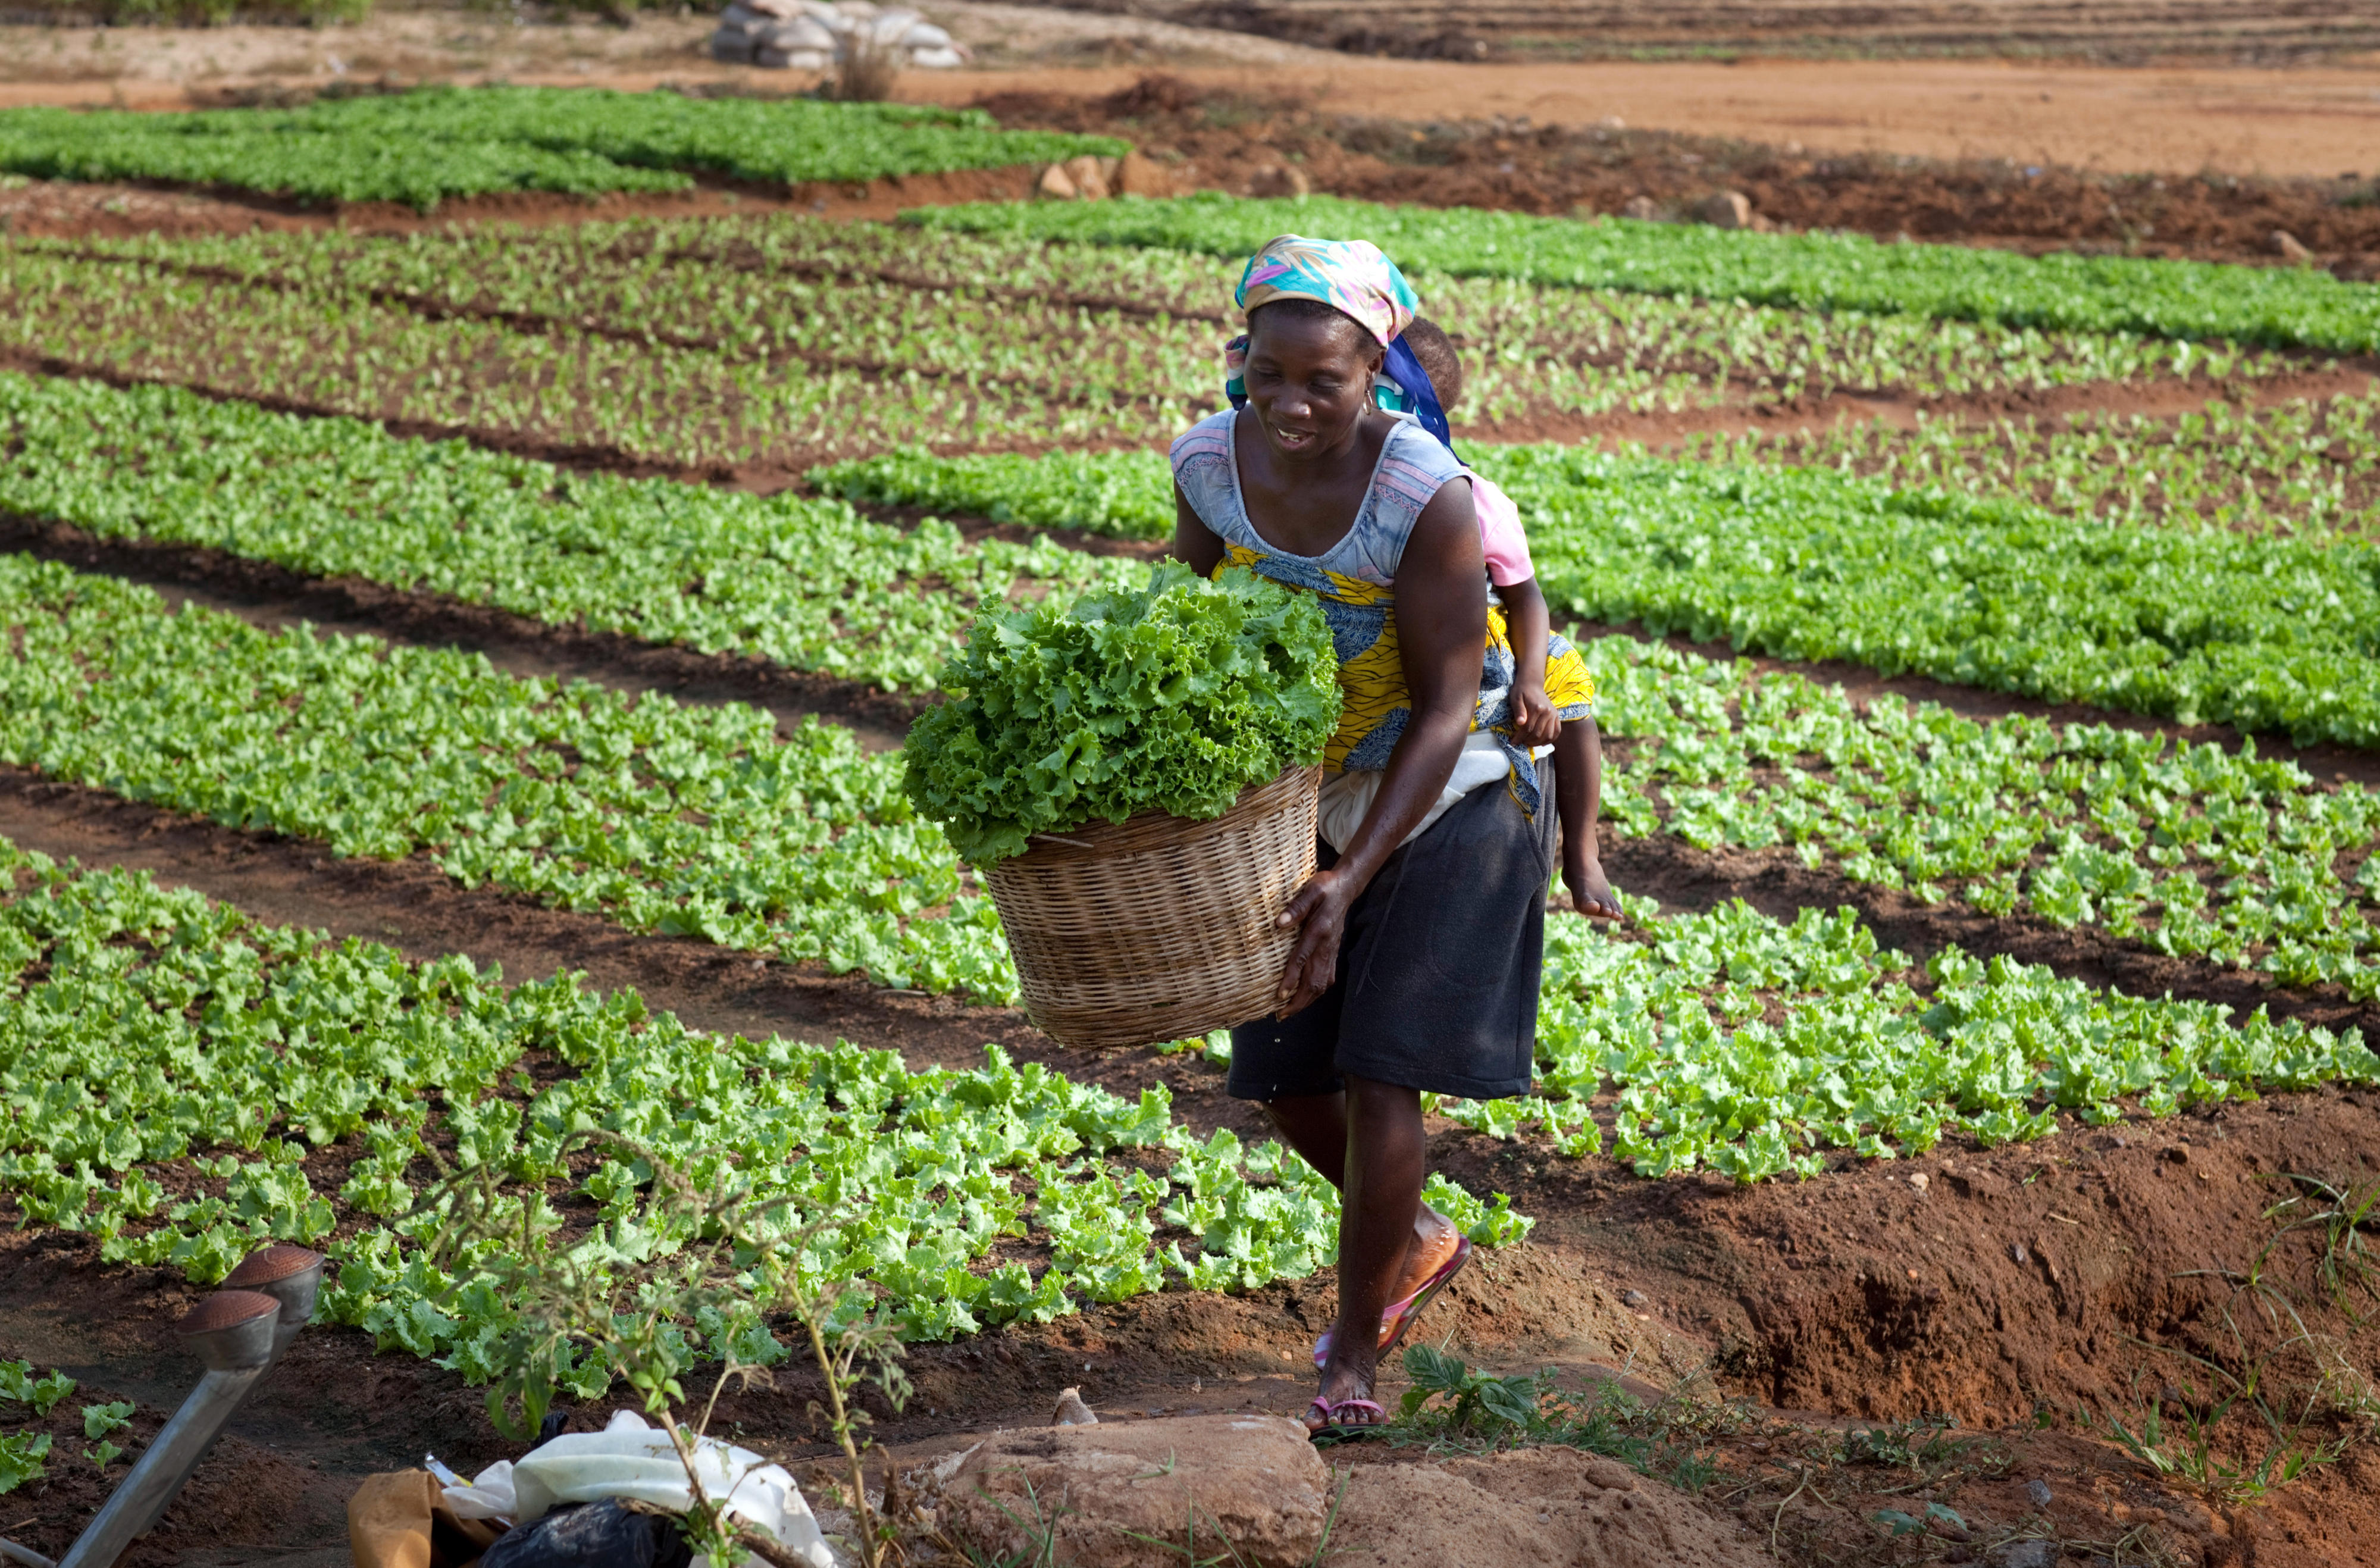 A woman in Togo harvesting salad